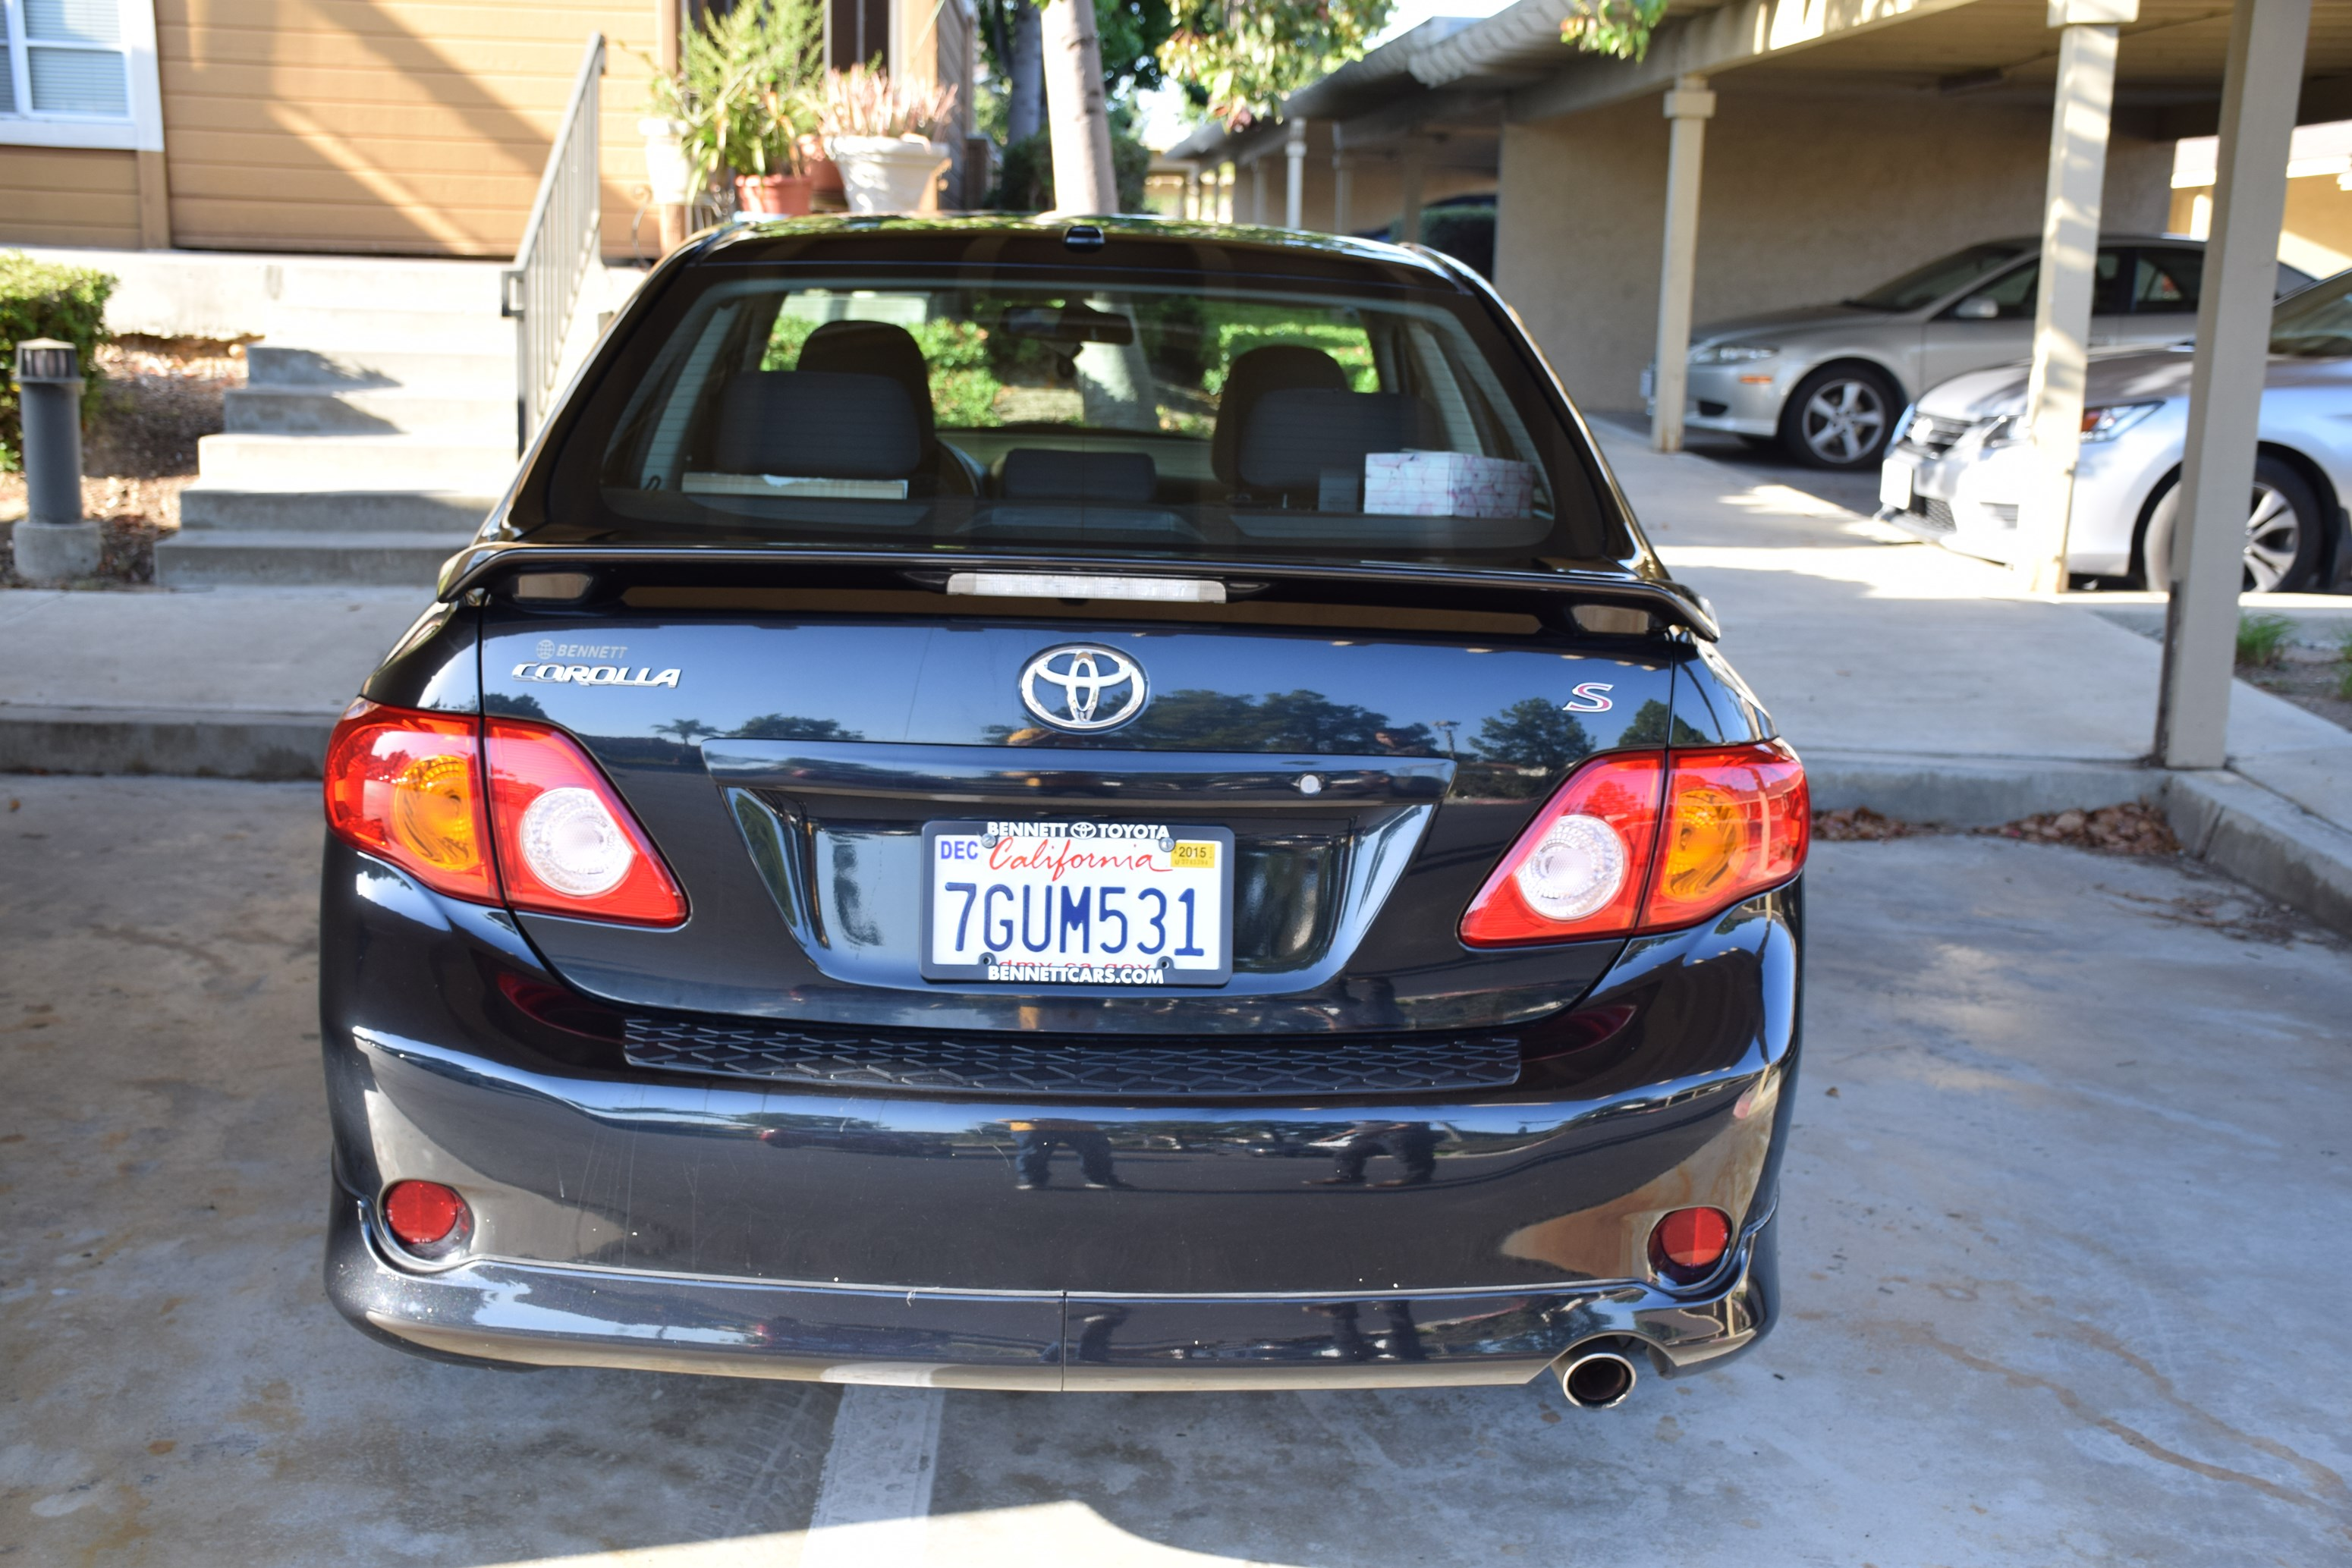 For Sale: Used Toyota Corolla 2009 S (2nd Owner, Clean Title)/ Used ...